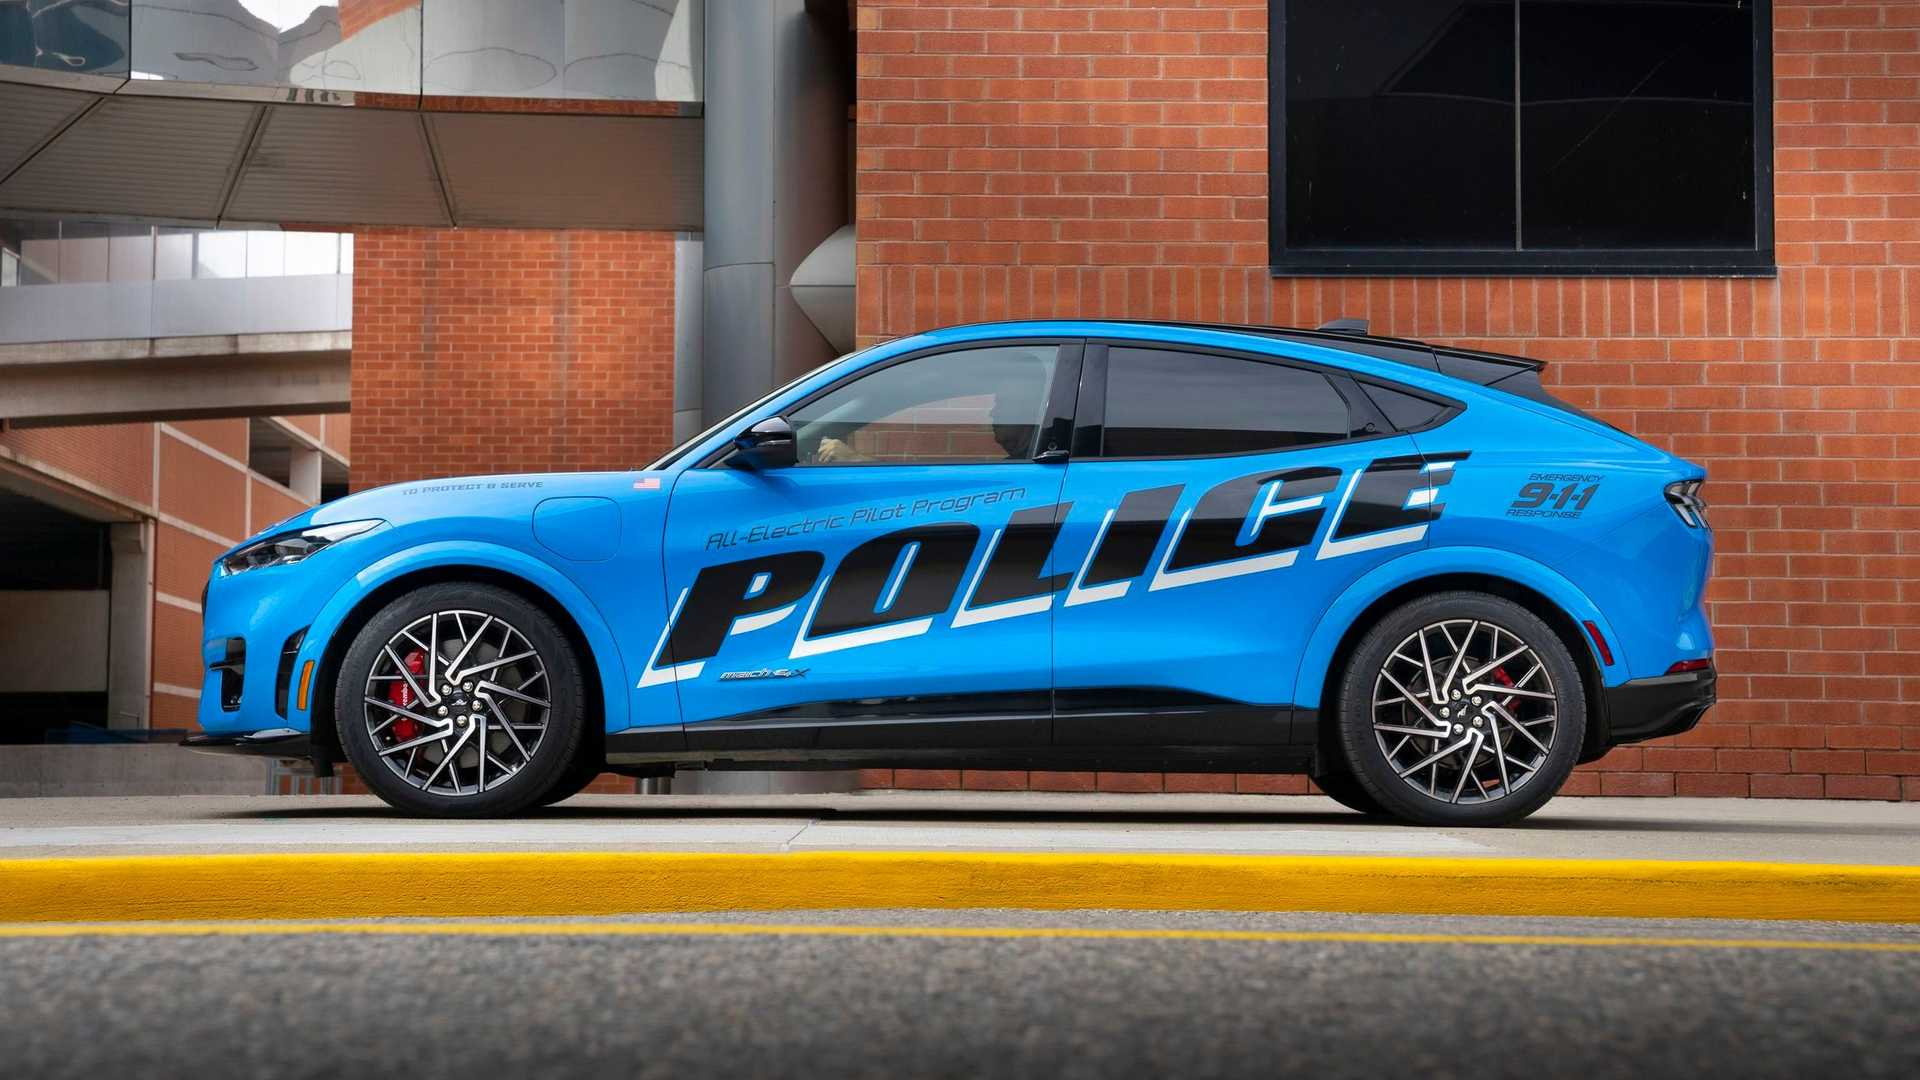 Ford Mustang Mache Policia